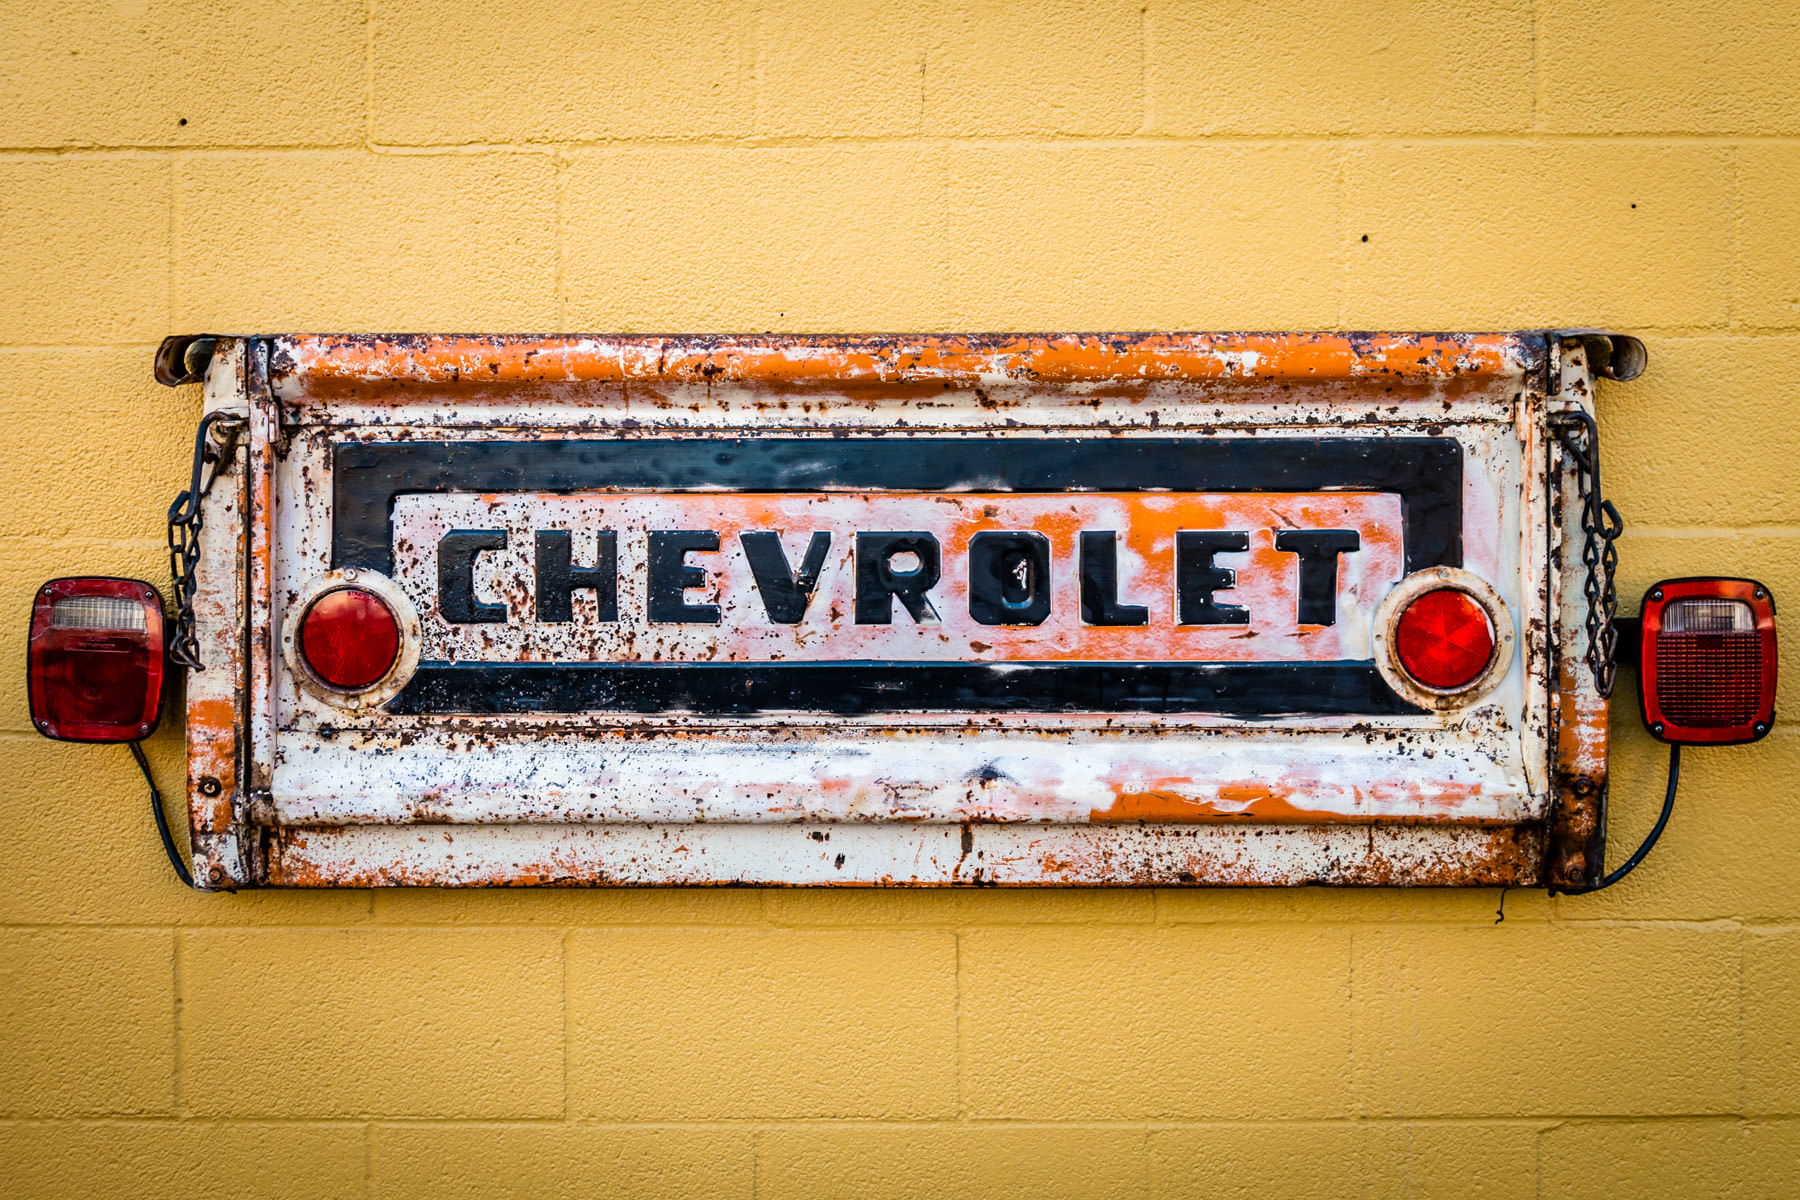 A tailgate from an old Chevrolet pickup truck mounted on a wall as part of the exterior decor of Cajun Tailgators restaurant in Downtown Plano, Texas.